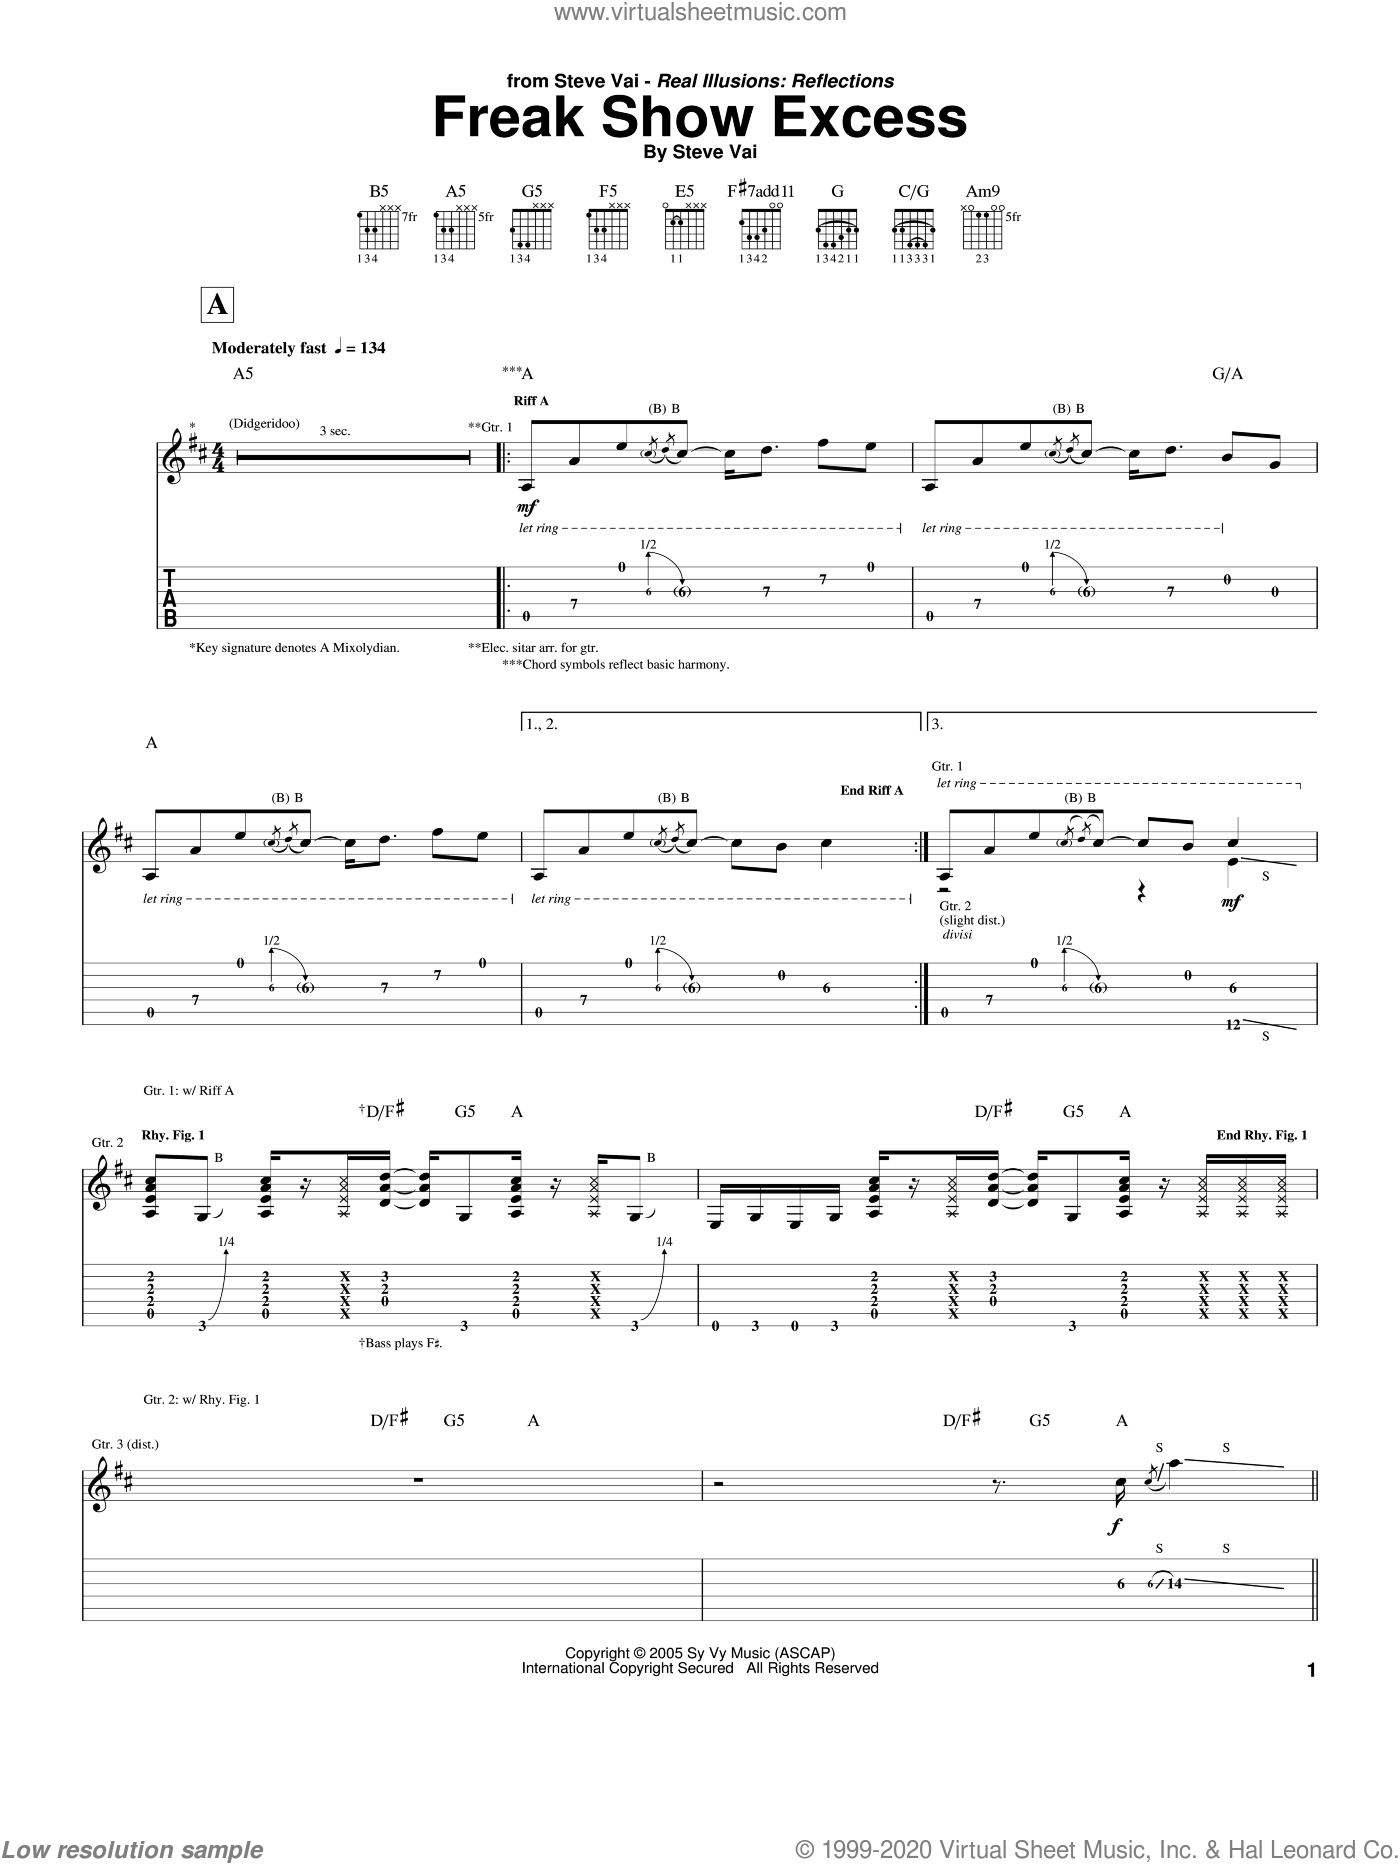 Freak Show Excess sheet music for guitar (tablature) by Steve Vai, intermediate guitar (tablature). Score Image Preview.